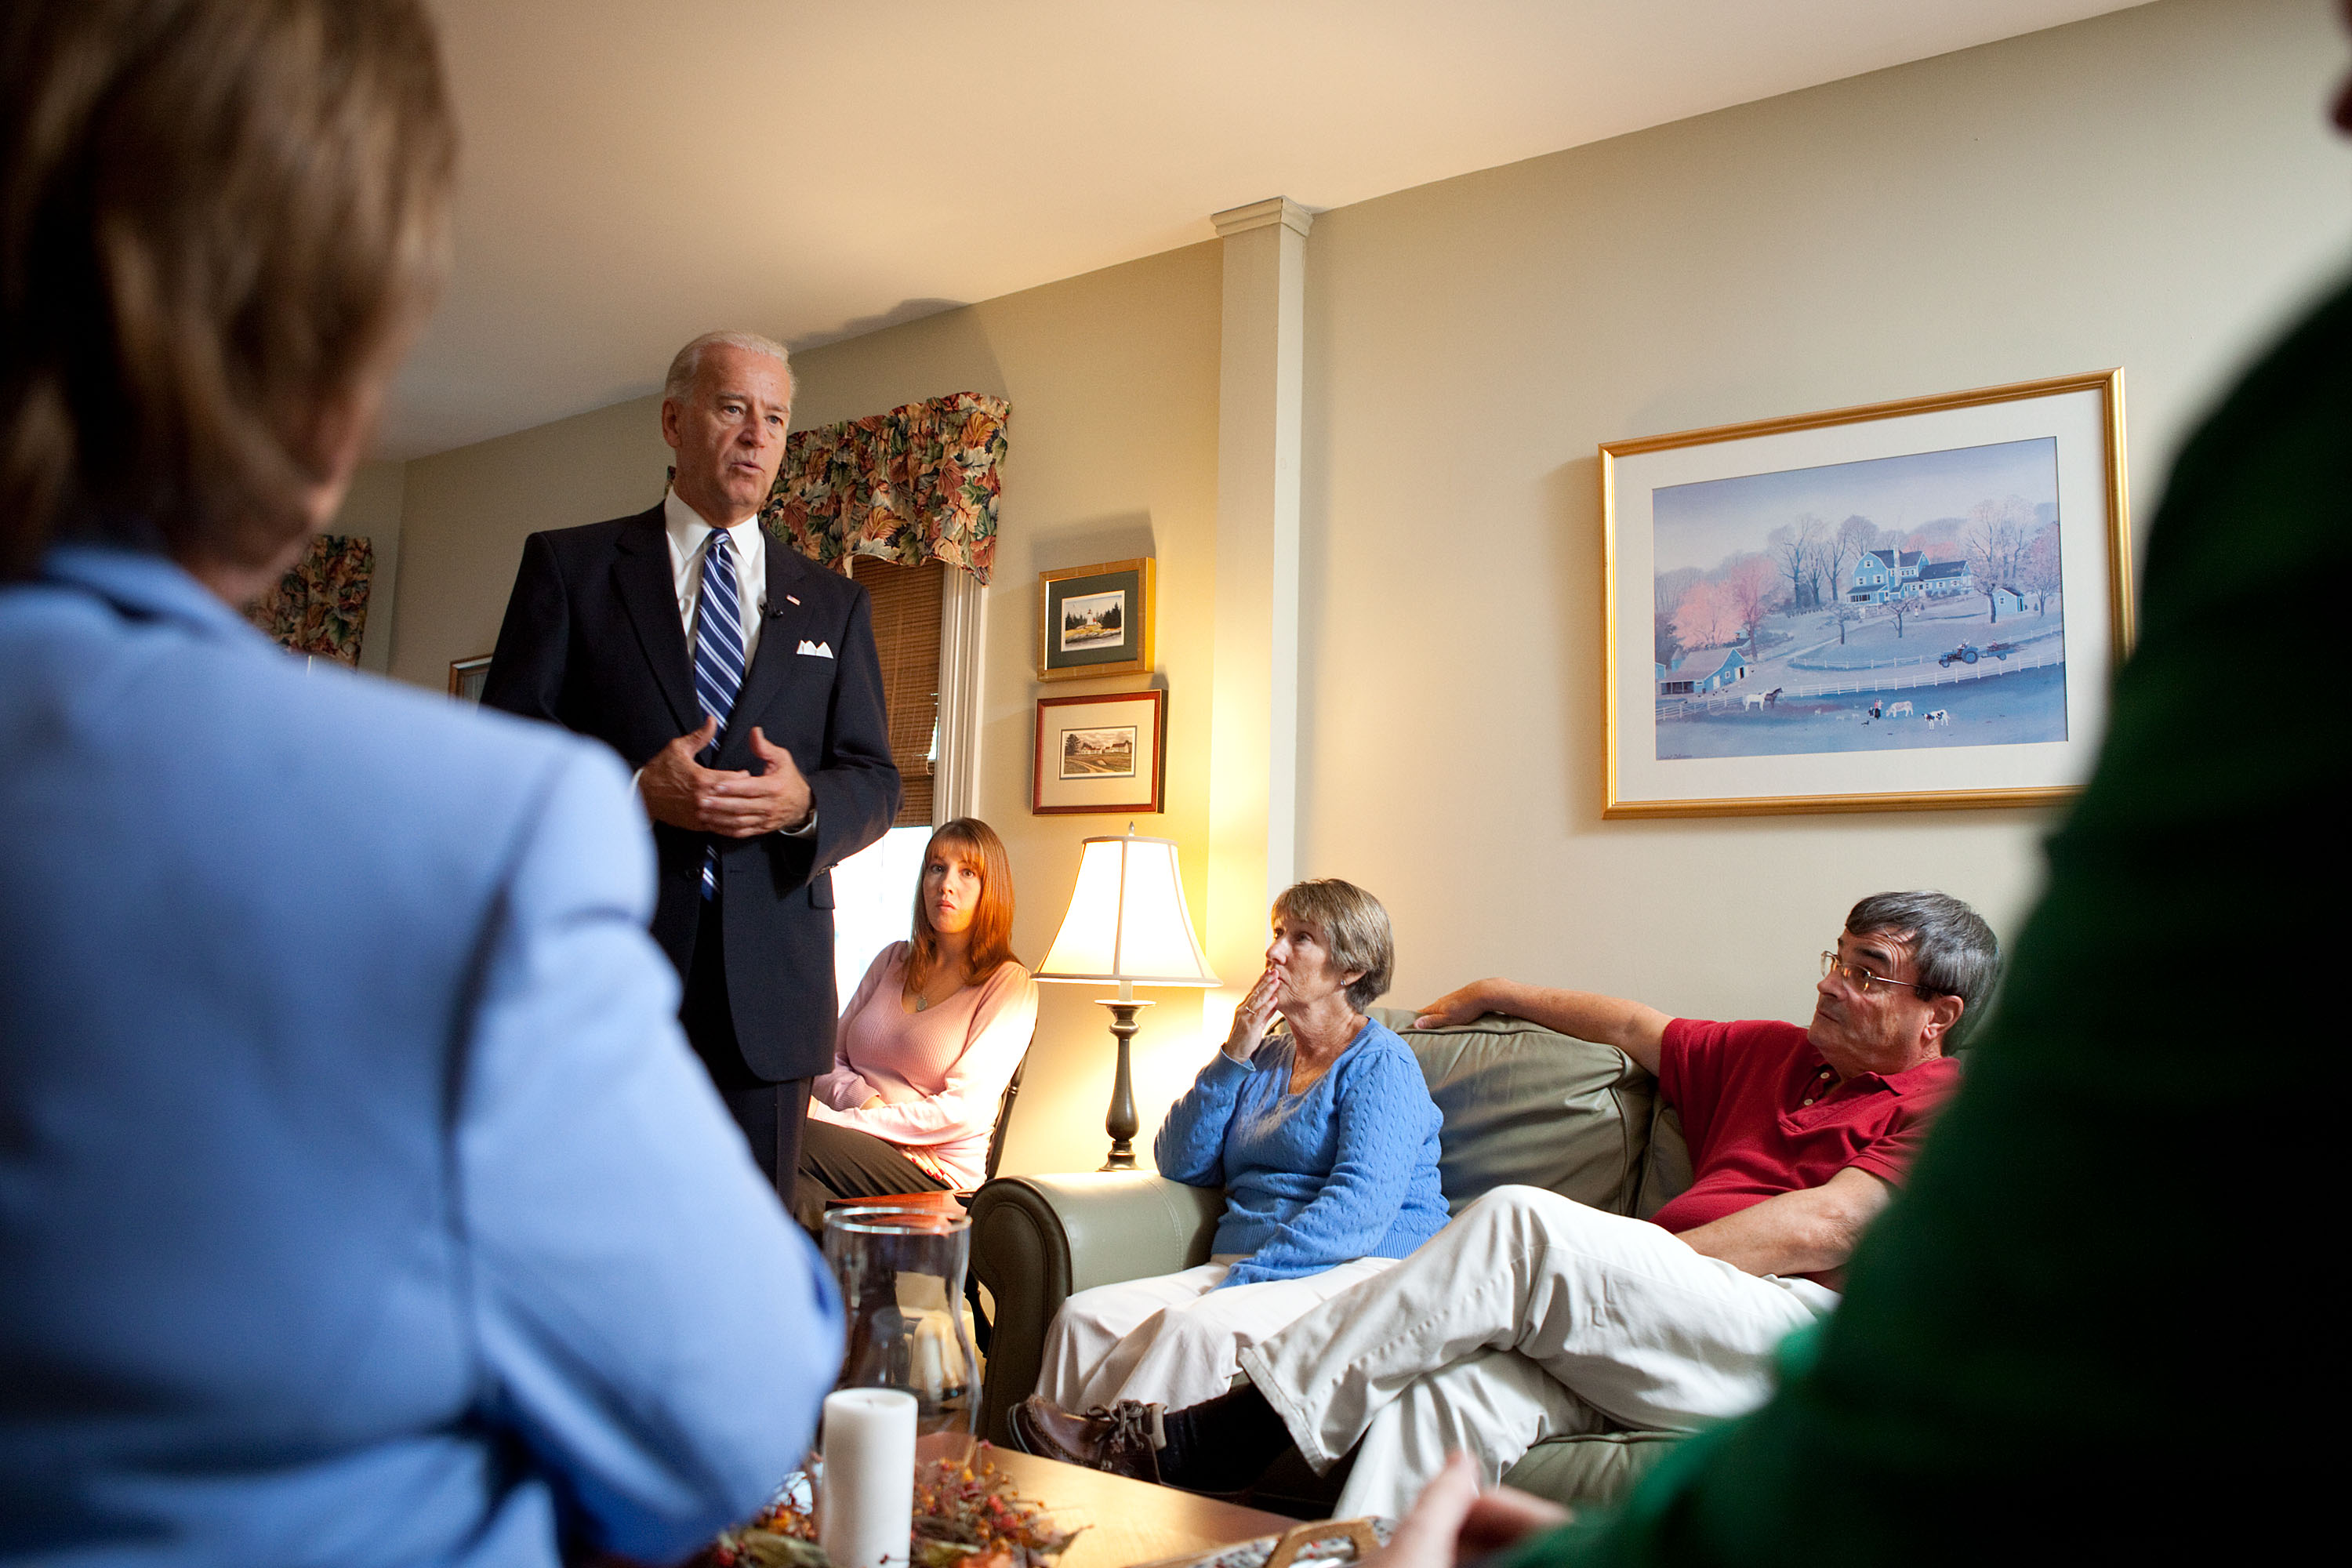 Vice President Joe Biden attends a Middle Class Task Force Event at the Home of Lorie and Robert Cochran in Manchester, New Hampshire